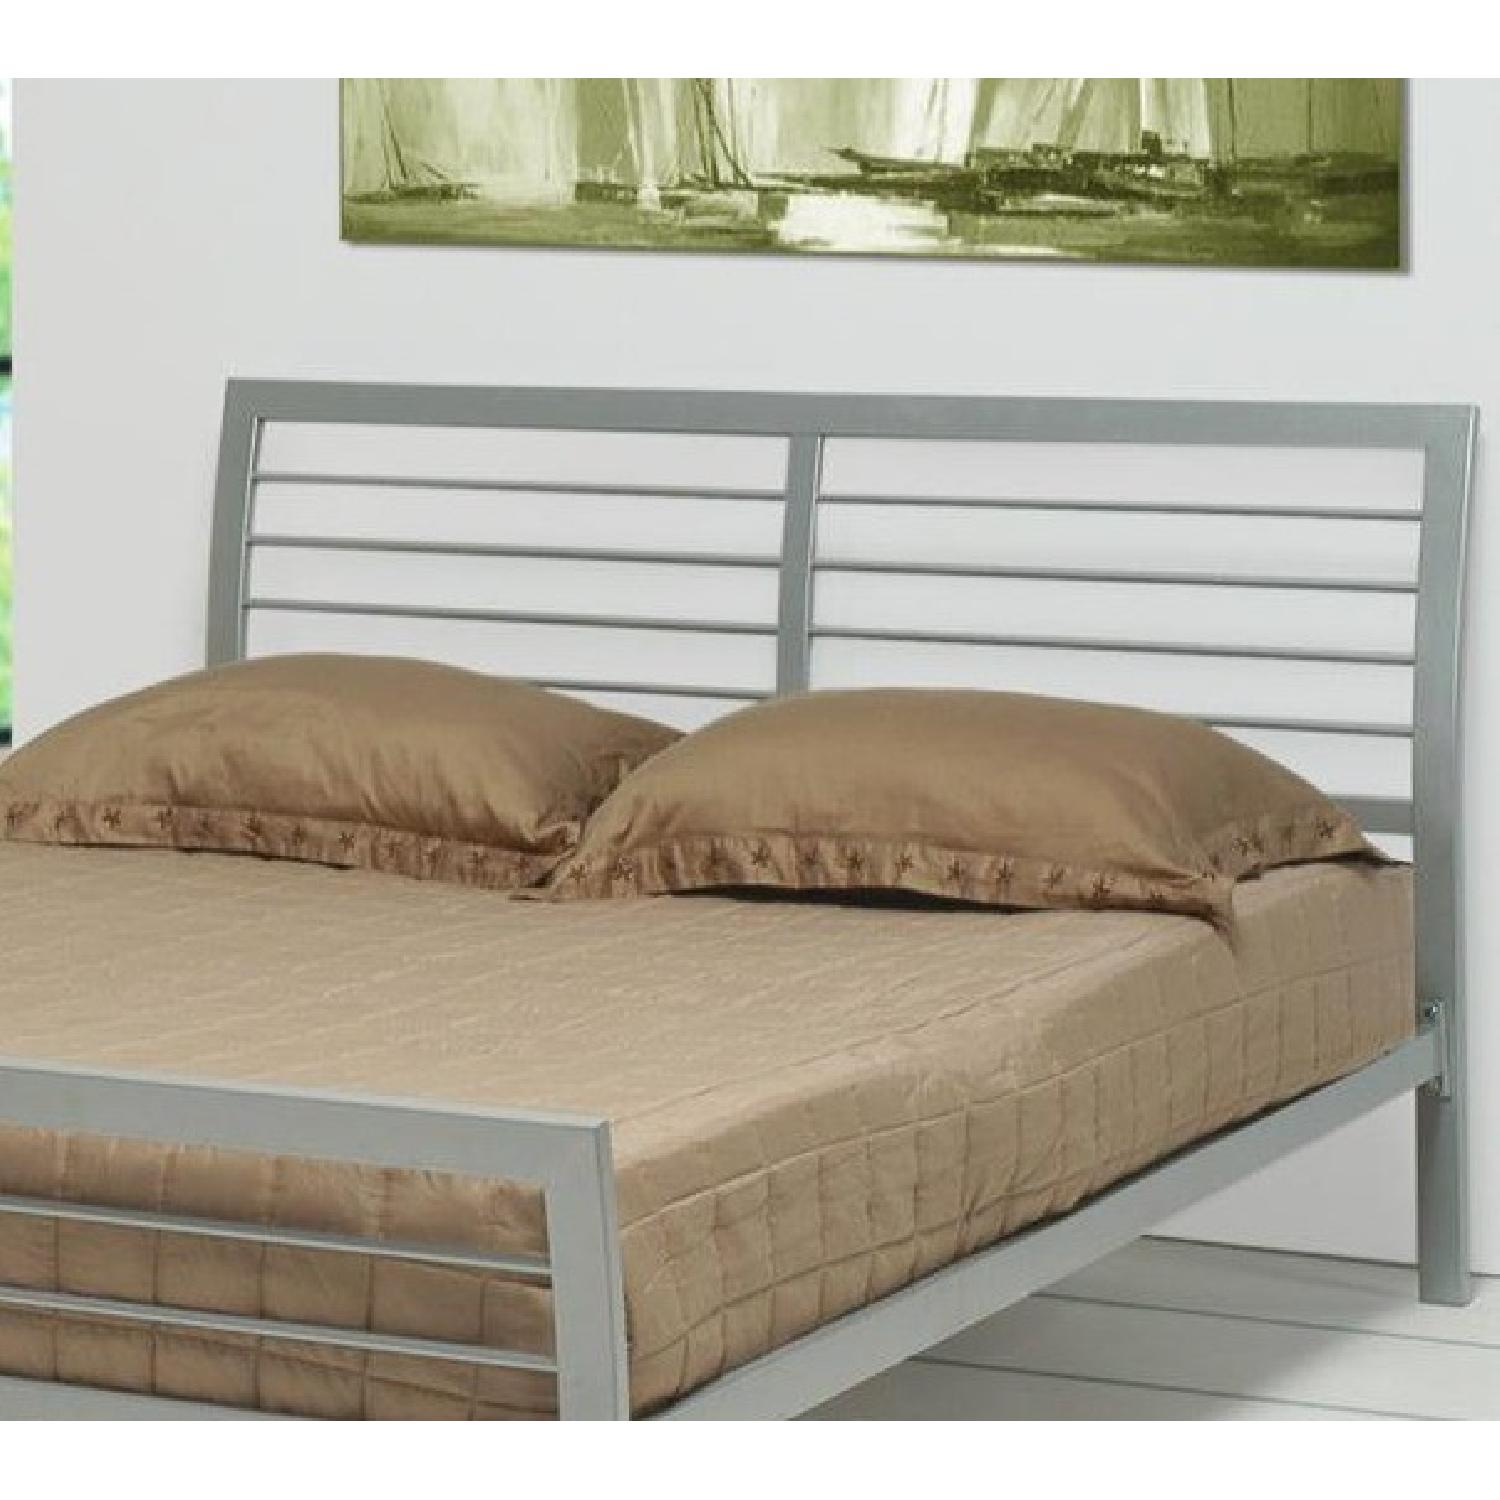 Modern Queen Size Metal Platform Bed in Silver Finish - image-3